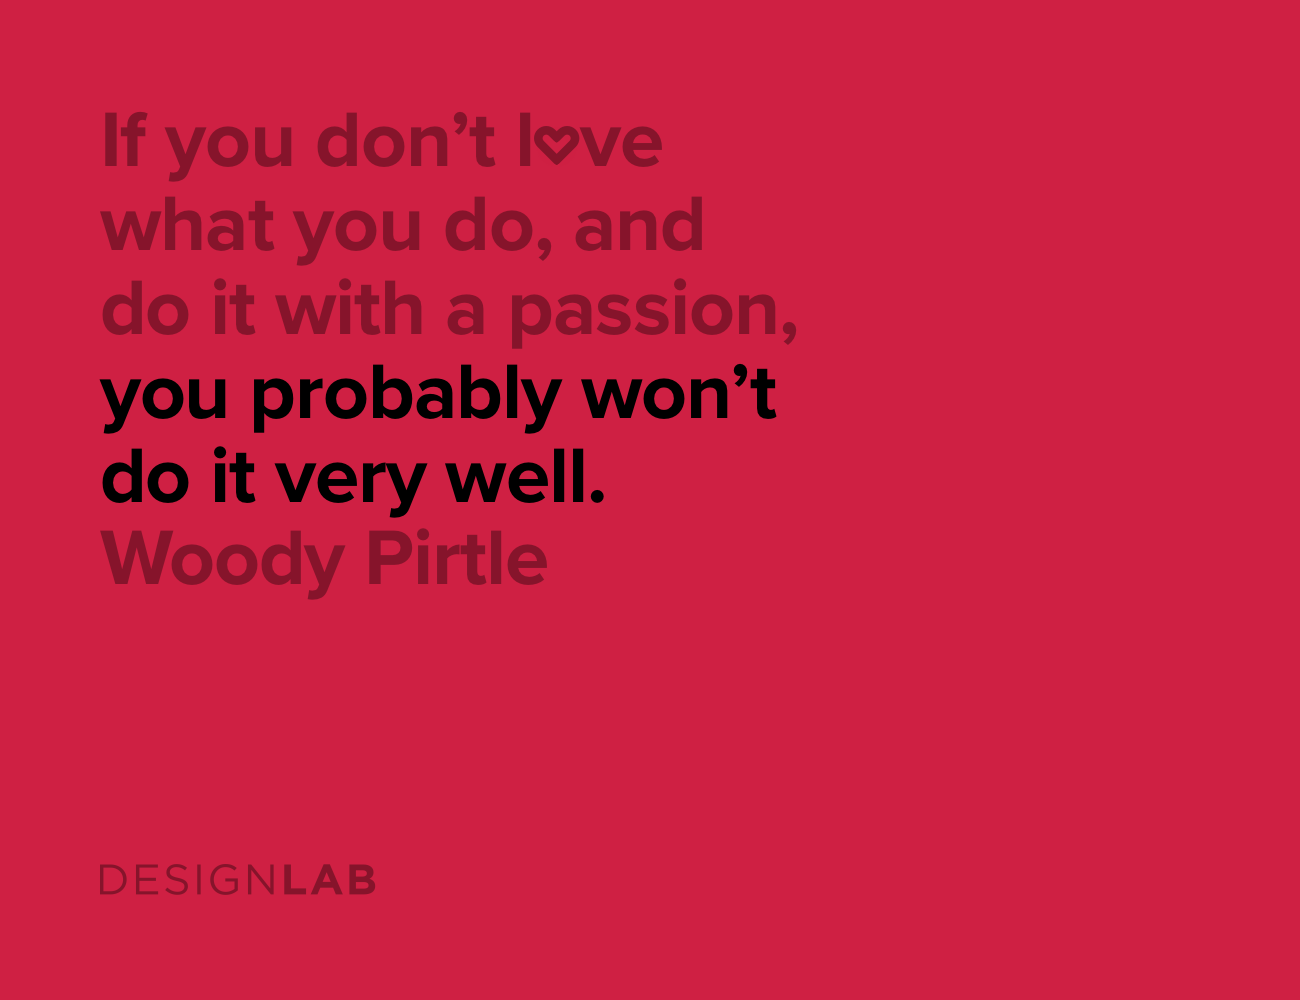 If you don't love what you do, and do it with a passion, you probably won't do it very well. Woody Pirtle